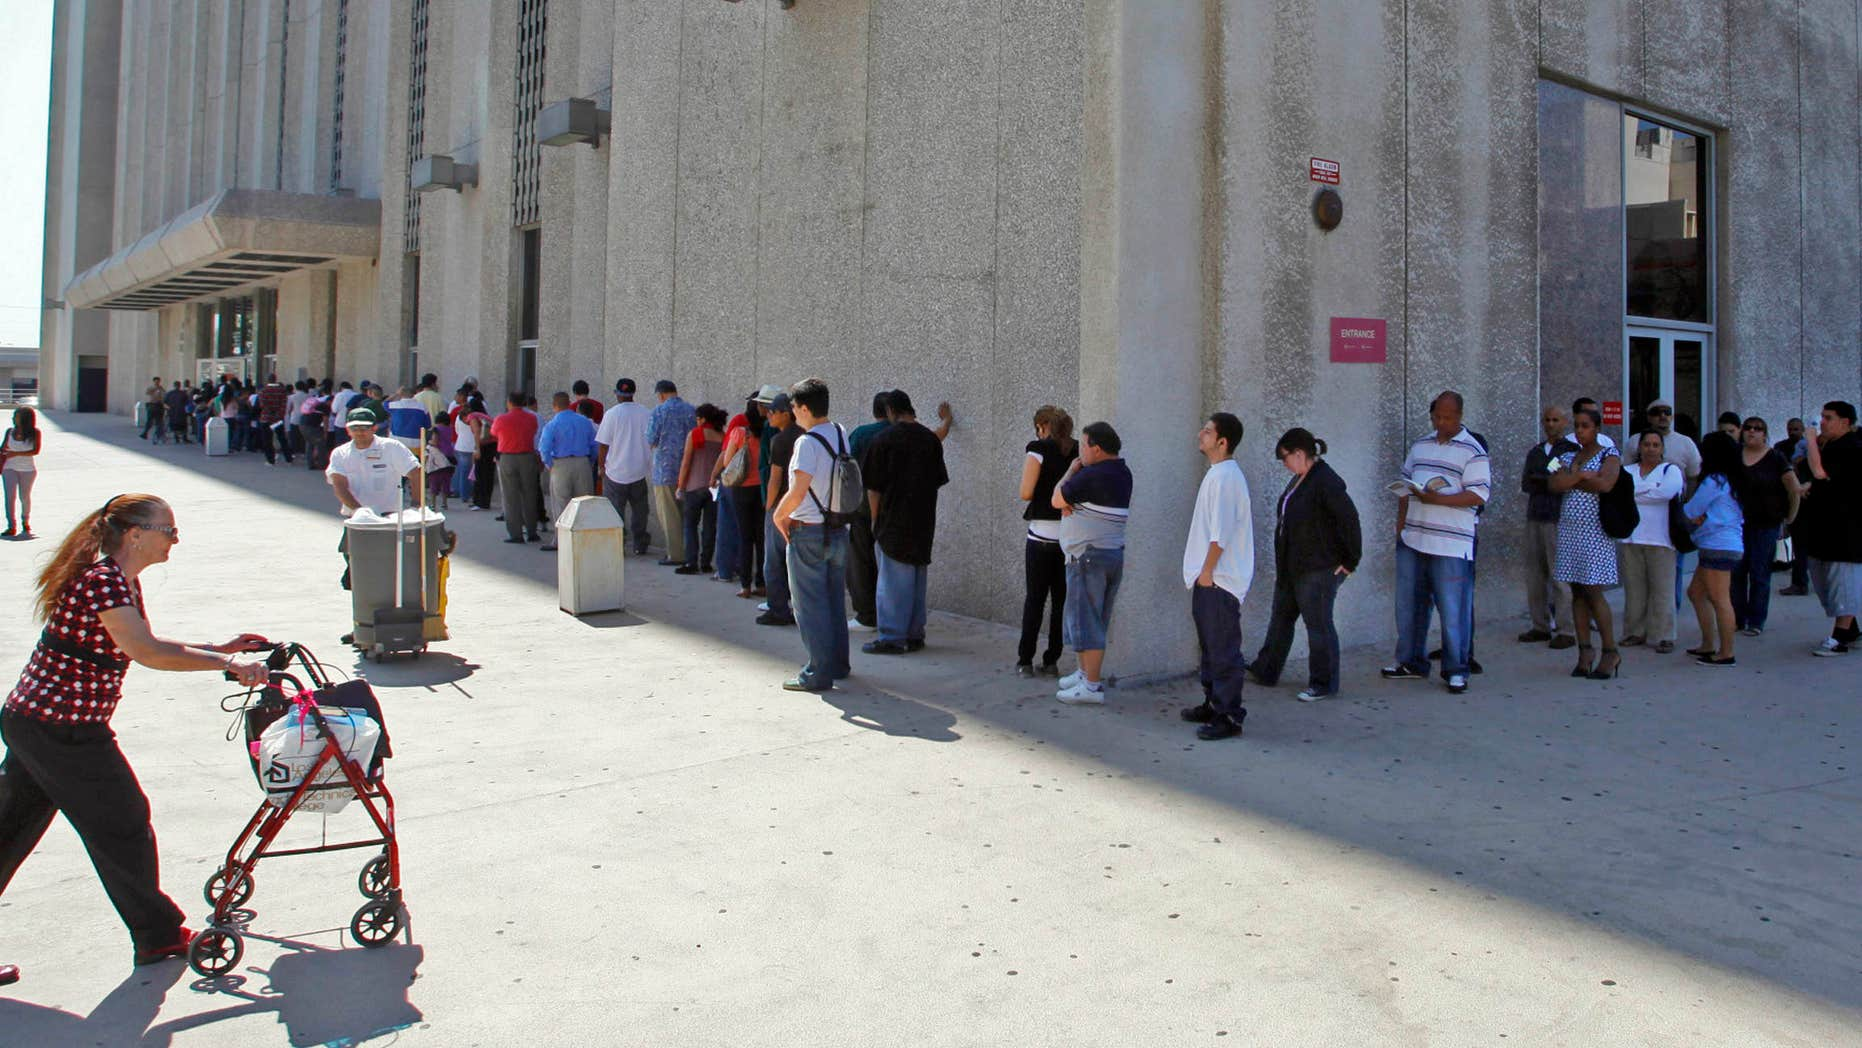 March 18, 2010: People line up outside the Metropolitan Courthouse, which handles traffic citations and other matters, in downtown Los Angeles.